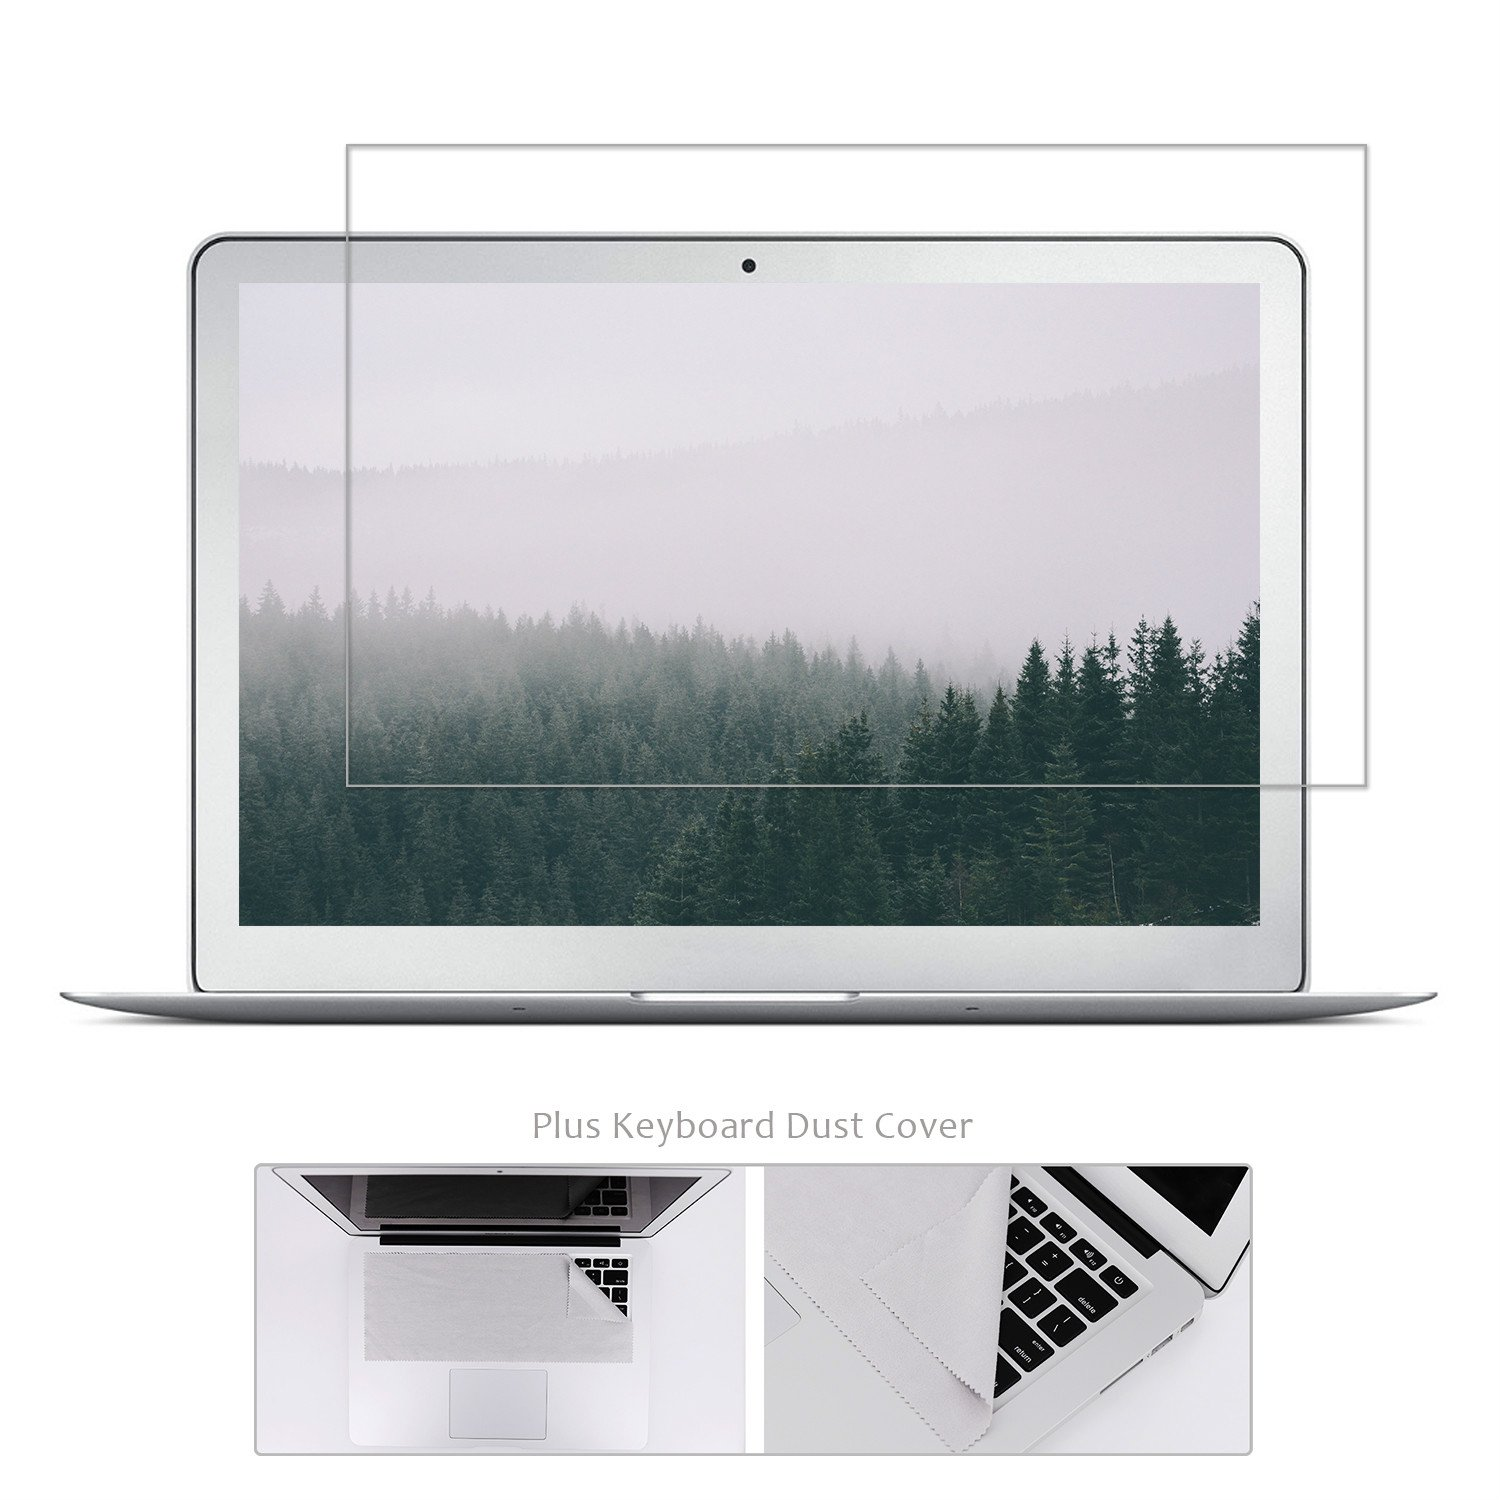 Tempered Glass Screen Protector Compatible MacBook Air 13 Inch Model A1369 A1466 + Large Microfiber Cleaning Cloth, Crystal Clear Anti Scratch and Bubble Free, Lifetime Risk-free Replacement Warranty